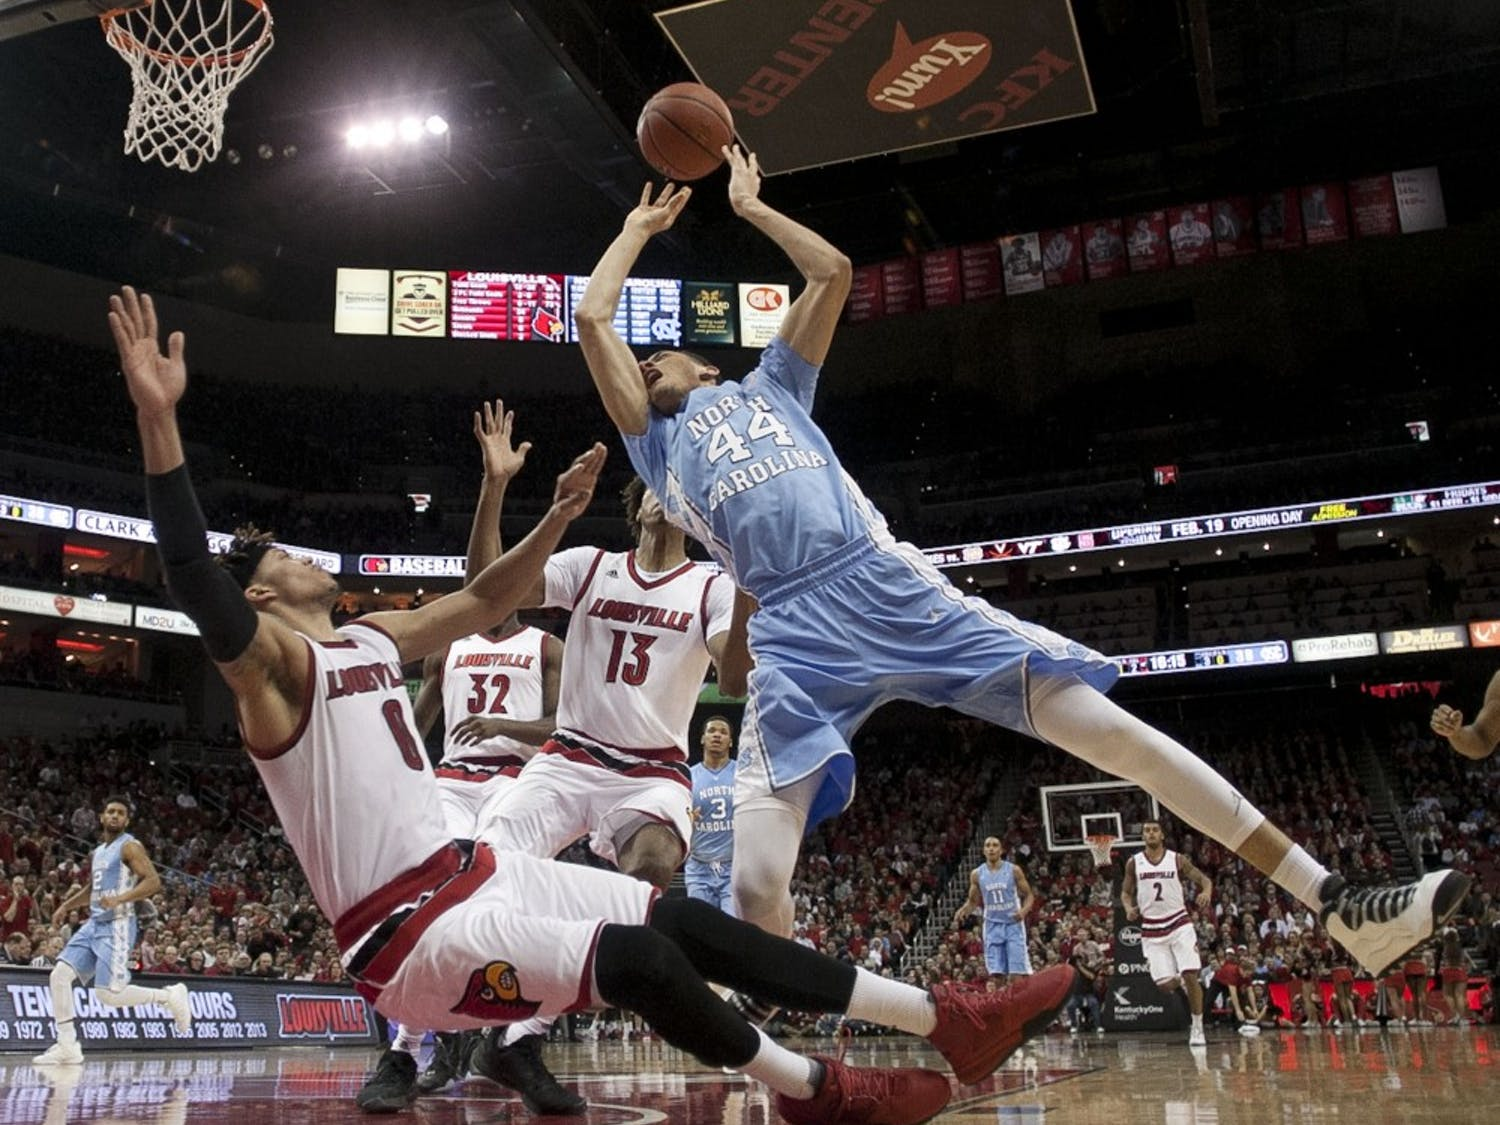 North Carolina's Justin Jackson (44) drives to the basket against Louisville's Damion Lee (0) on Monday, Feb. 1, 2016, at the KFC Yum! Center in Louisville, Ky. (Robert Willett/Raleigh News & Observer/TNS)